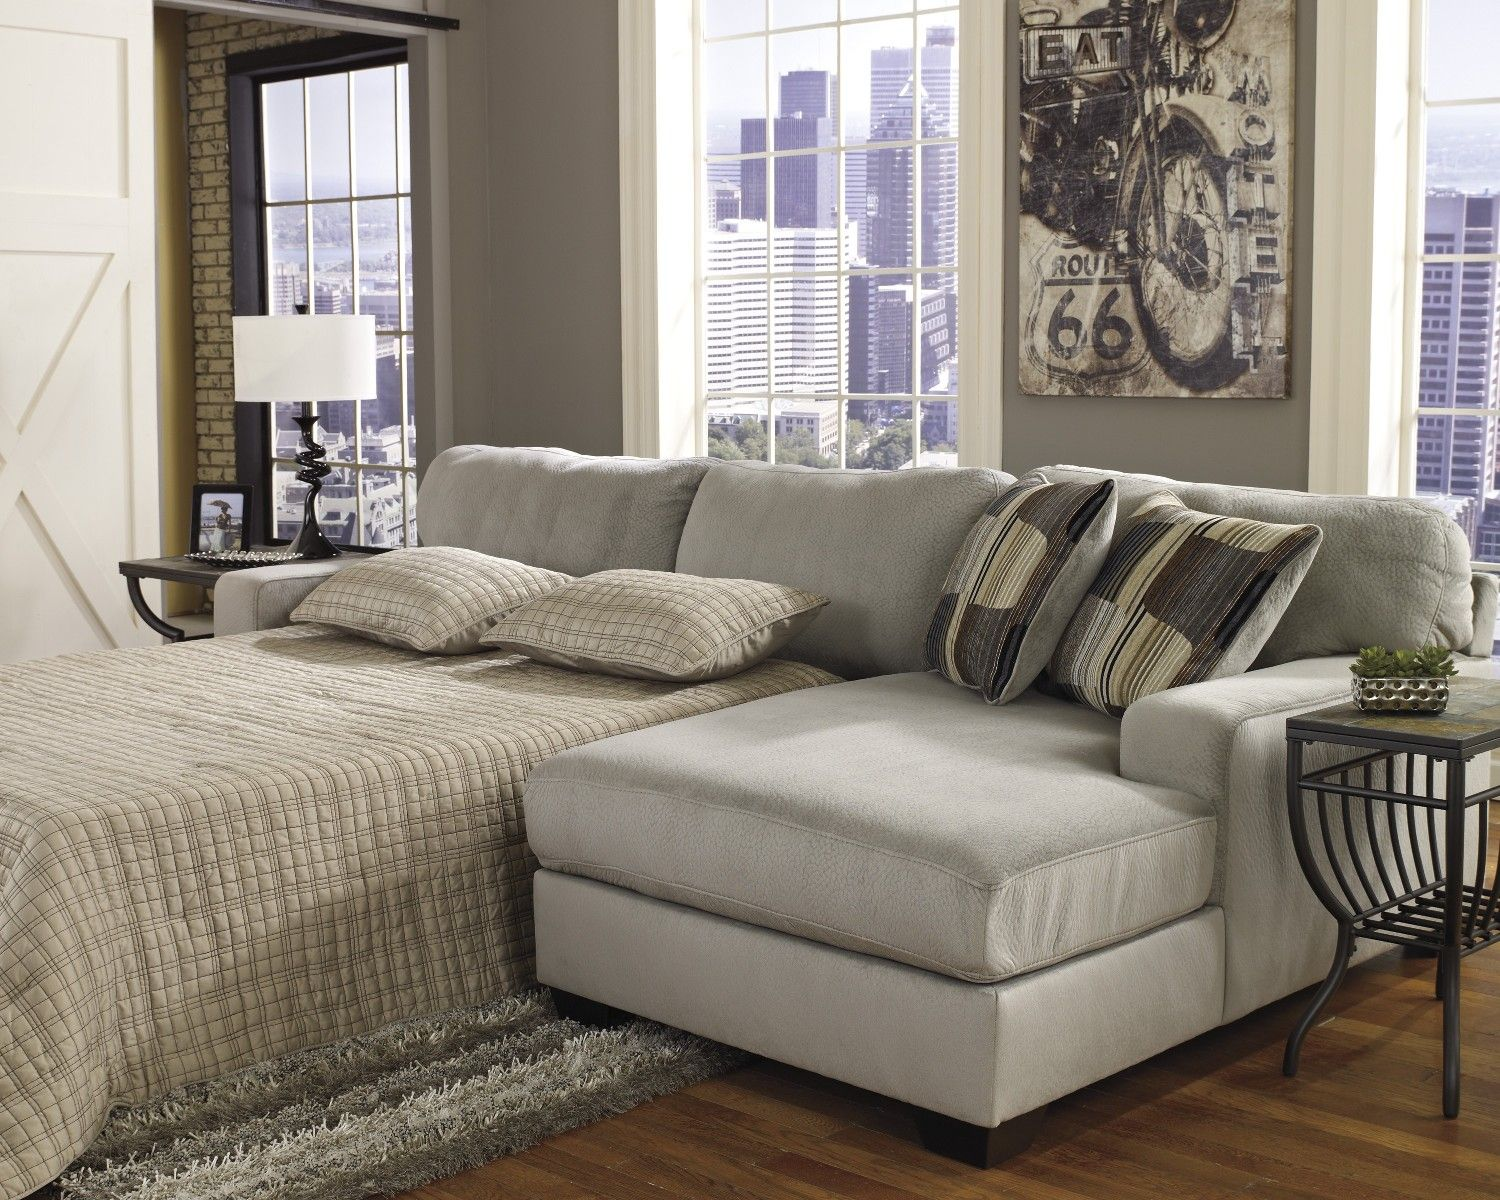 Tips To Consider When Buying A Sleeper Sofa Sectional Sofa With